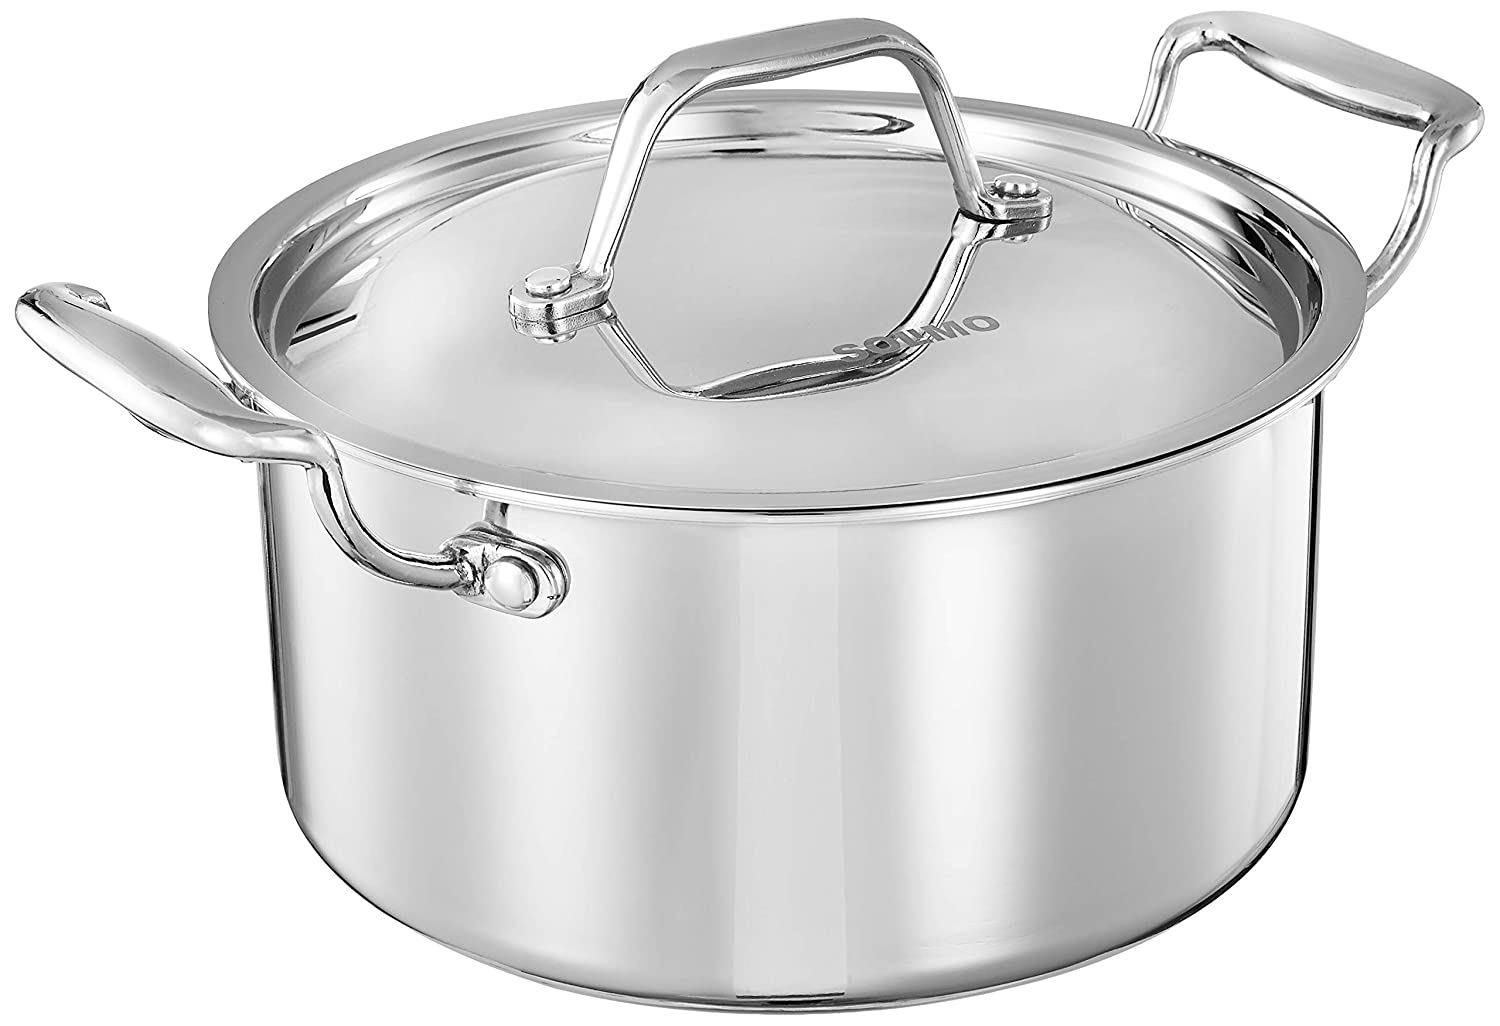 Treo Casserole 22 cm with lid- Triply